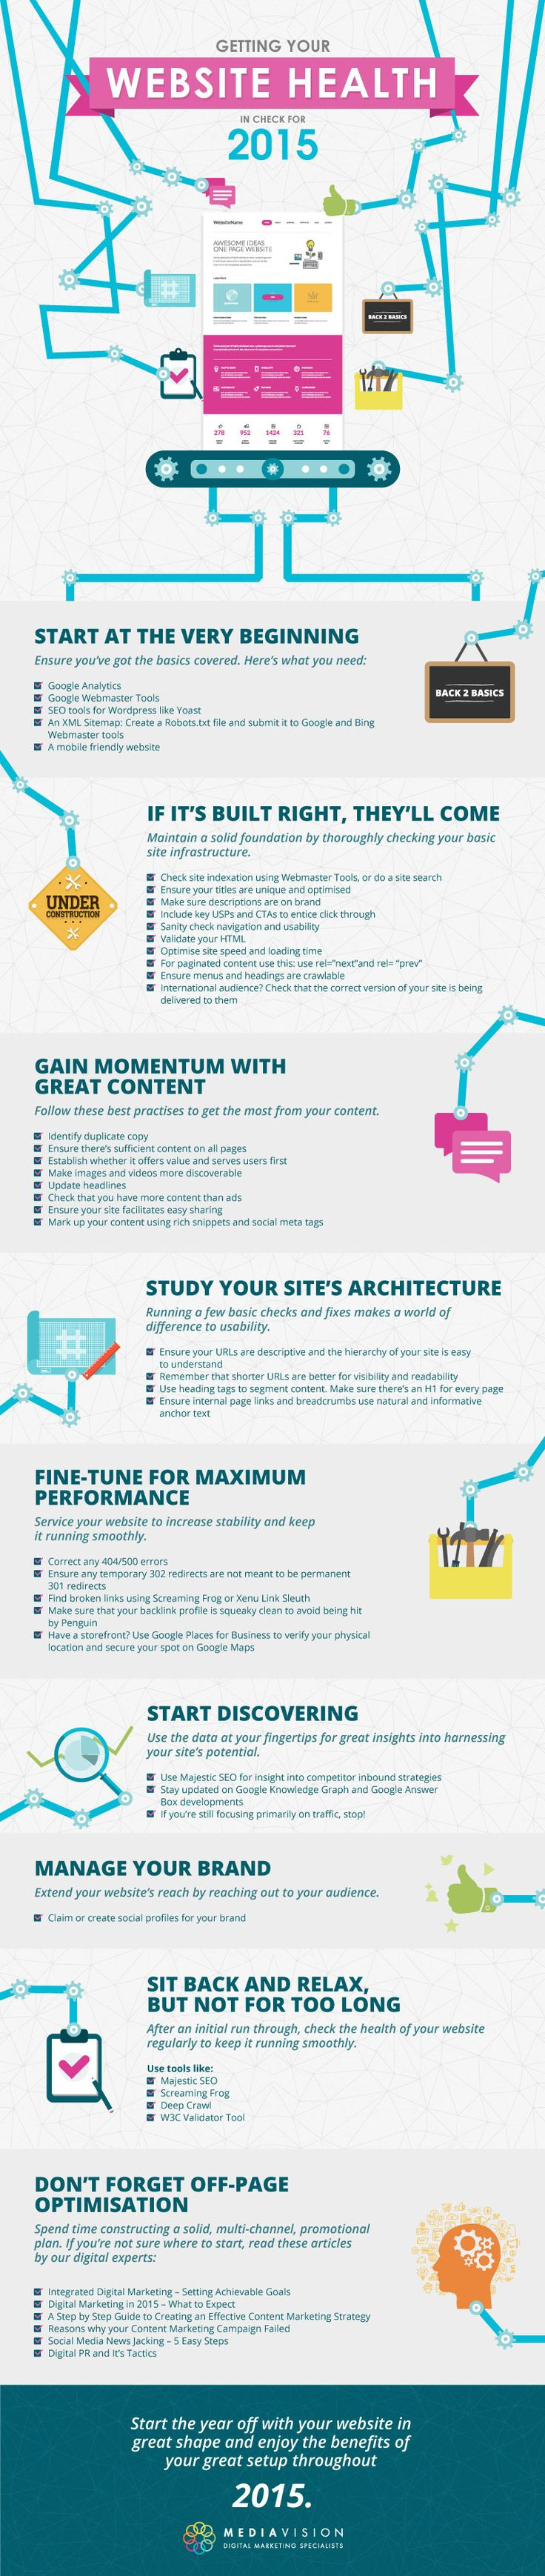 For 2015, it's vital that your website is 100% compliant and up to date from a technical point of view. This has always been an important part of SEO but it's becoming more pertinent than ever. With inbound strategies such as Content Marketing and Digital PR requiring higher levels of resourcing, poor onsite can really hurt the ROI of your digital marketing strategy.